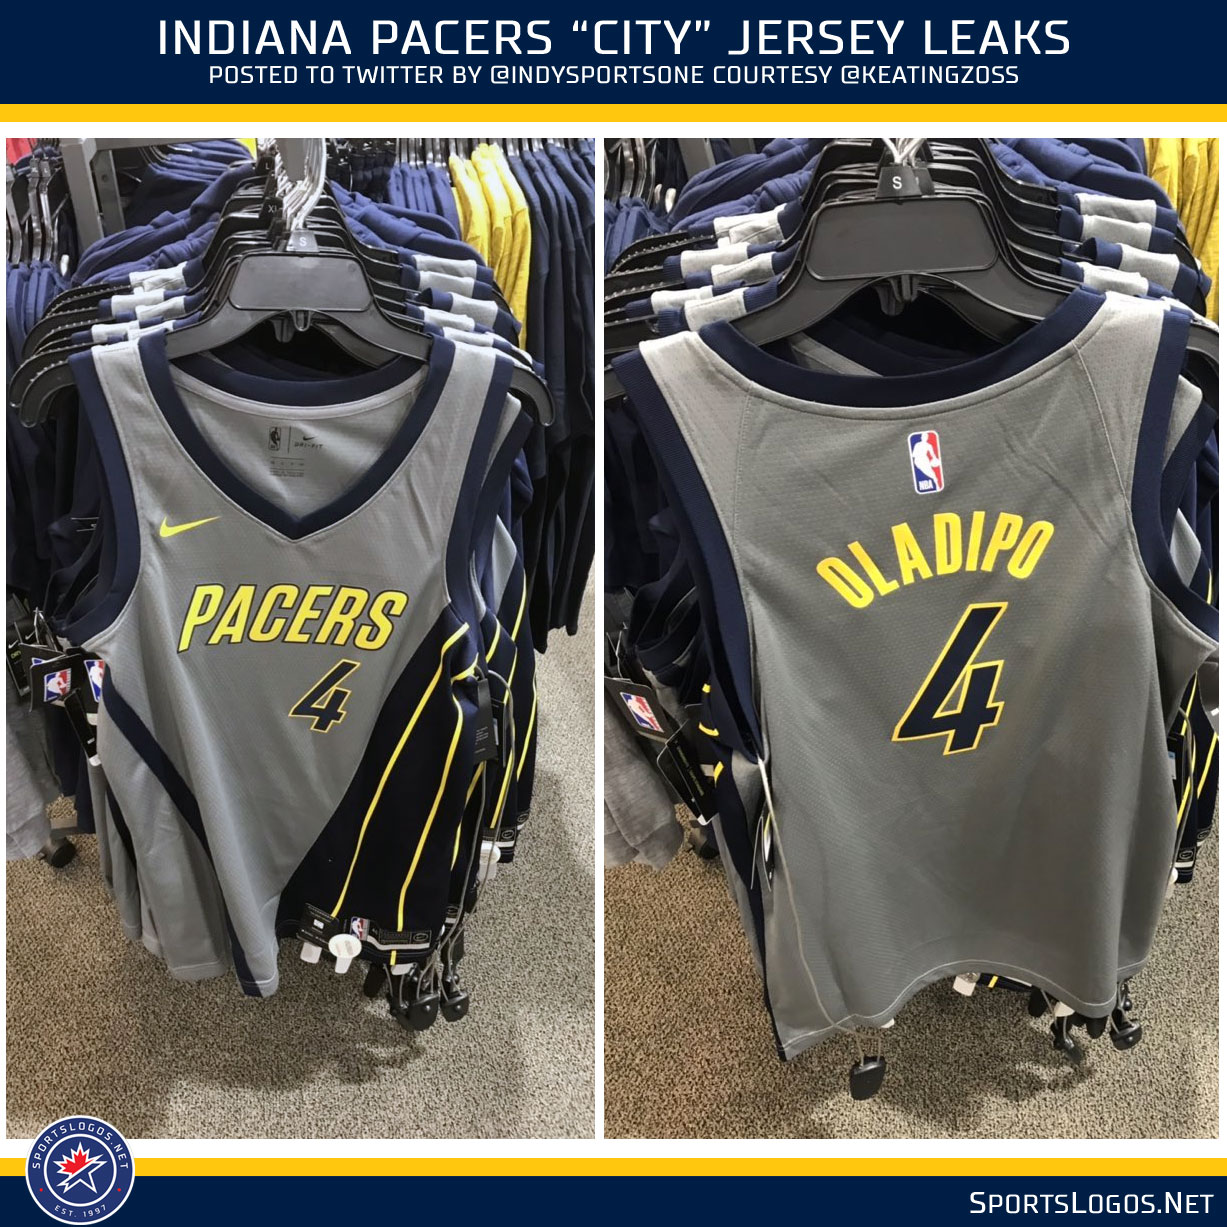 Pacers New Uniforms 2019 More NBA City Uniform Leaks: Nets, Pacers, and Knicks | Chris